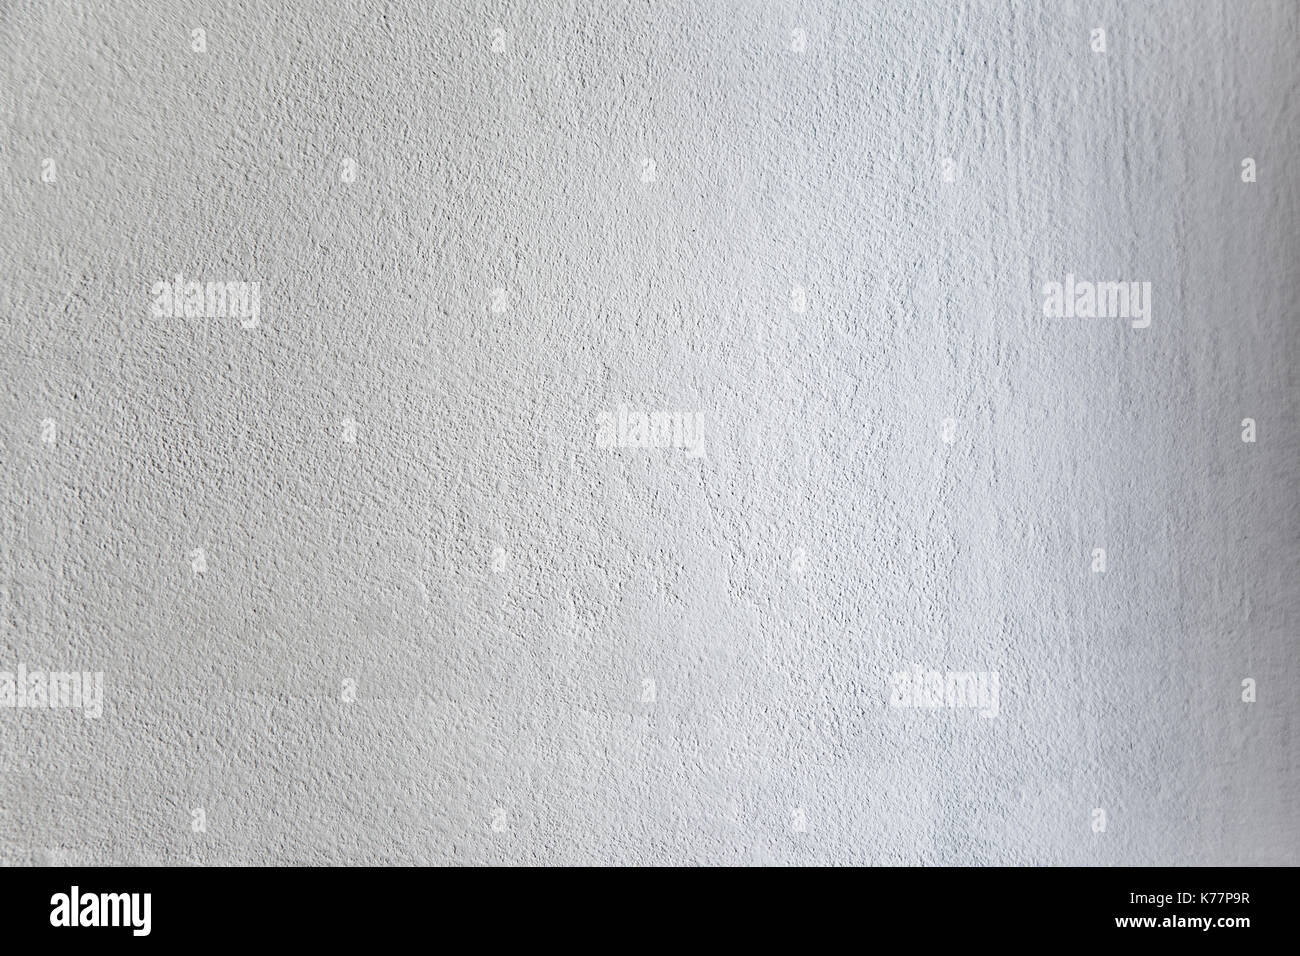 Rough light white colored surface for backgrounds and textures. - Stock Image